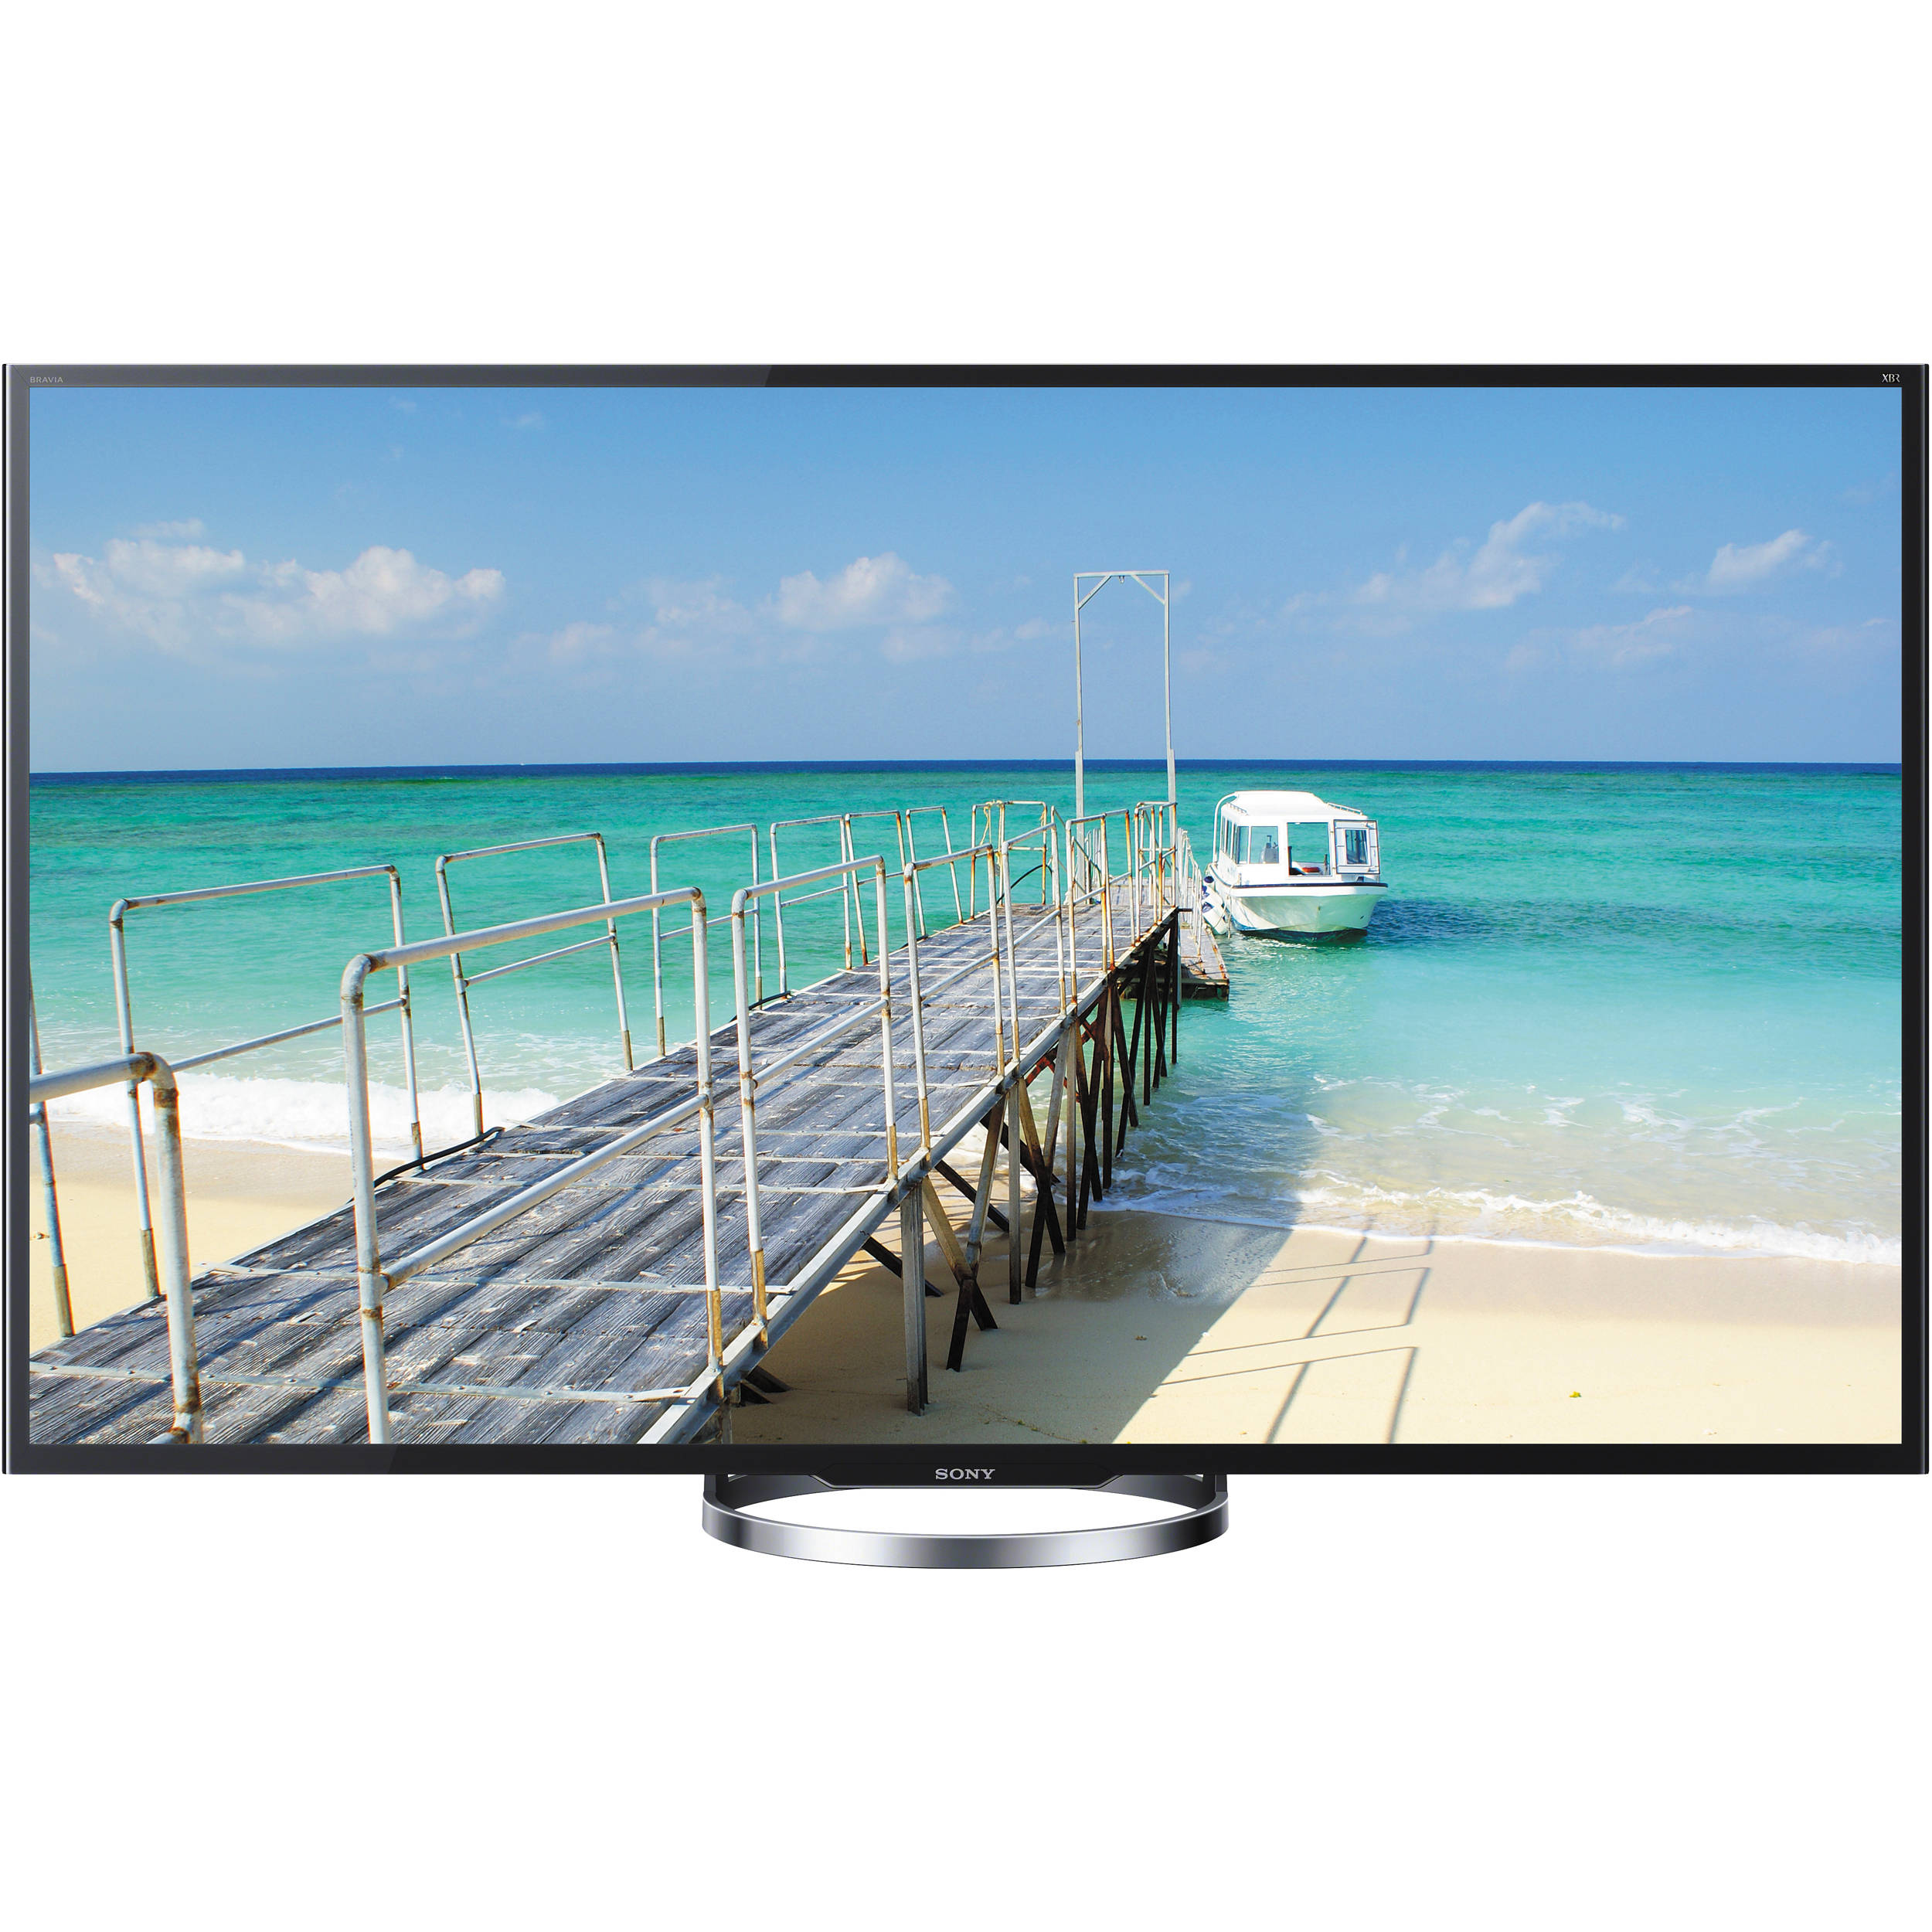 Sony BRAVIA XBR-65X850A HDTV Windows 8 Driver Download